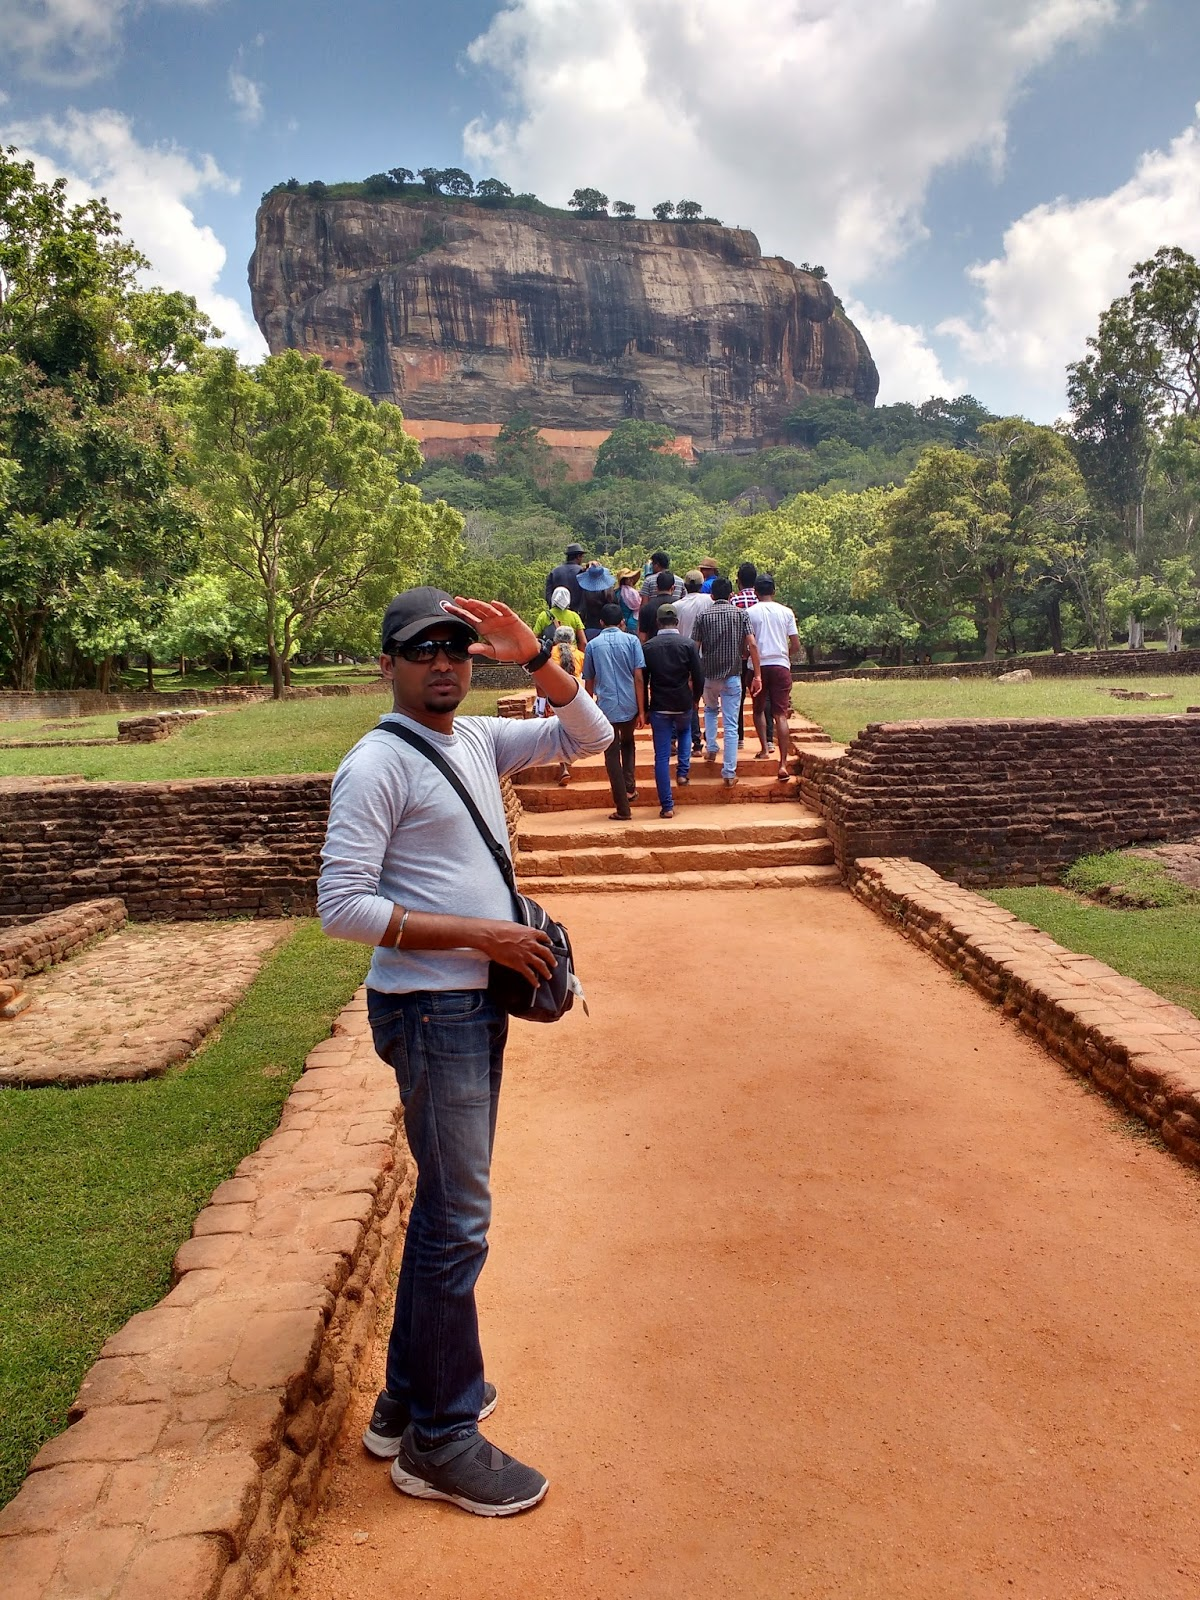 tourism in sri lanka essay The sri lanka tourism development authority (sltda) was formed as the apex body for sri lanka tourism under section 2 of the tourism act (no 38 of 2005)sltda acts.